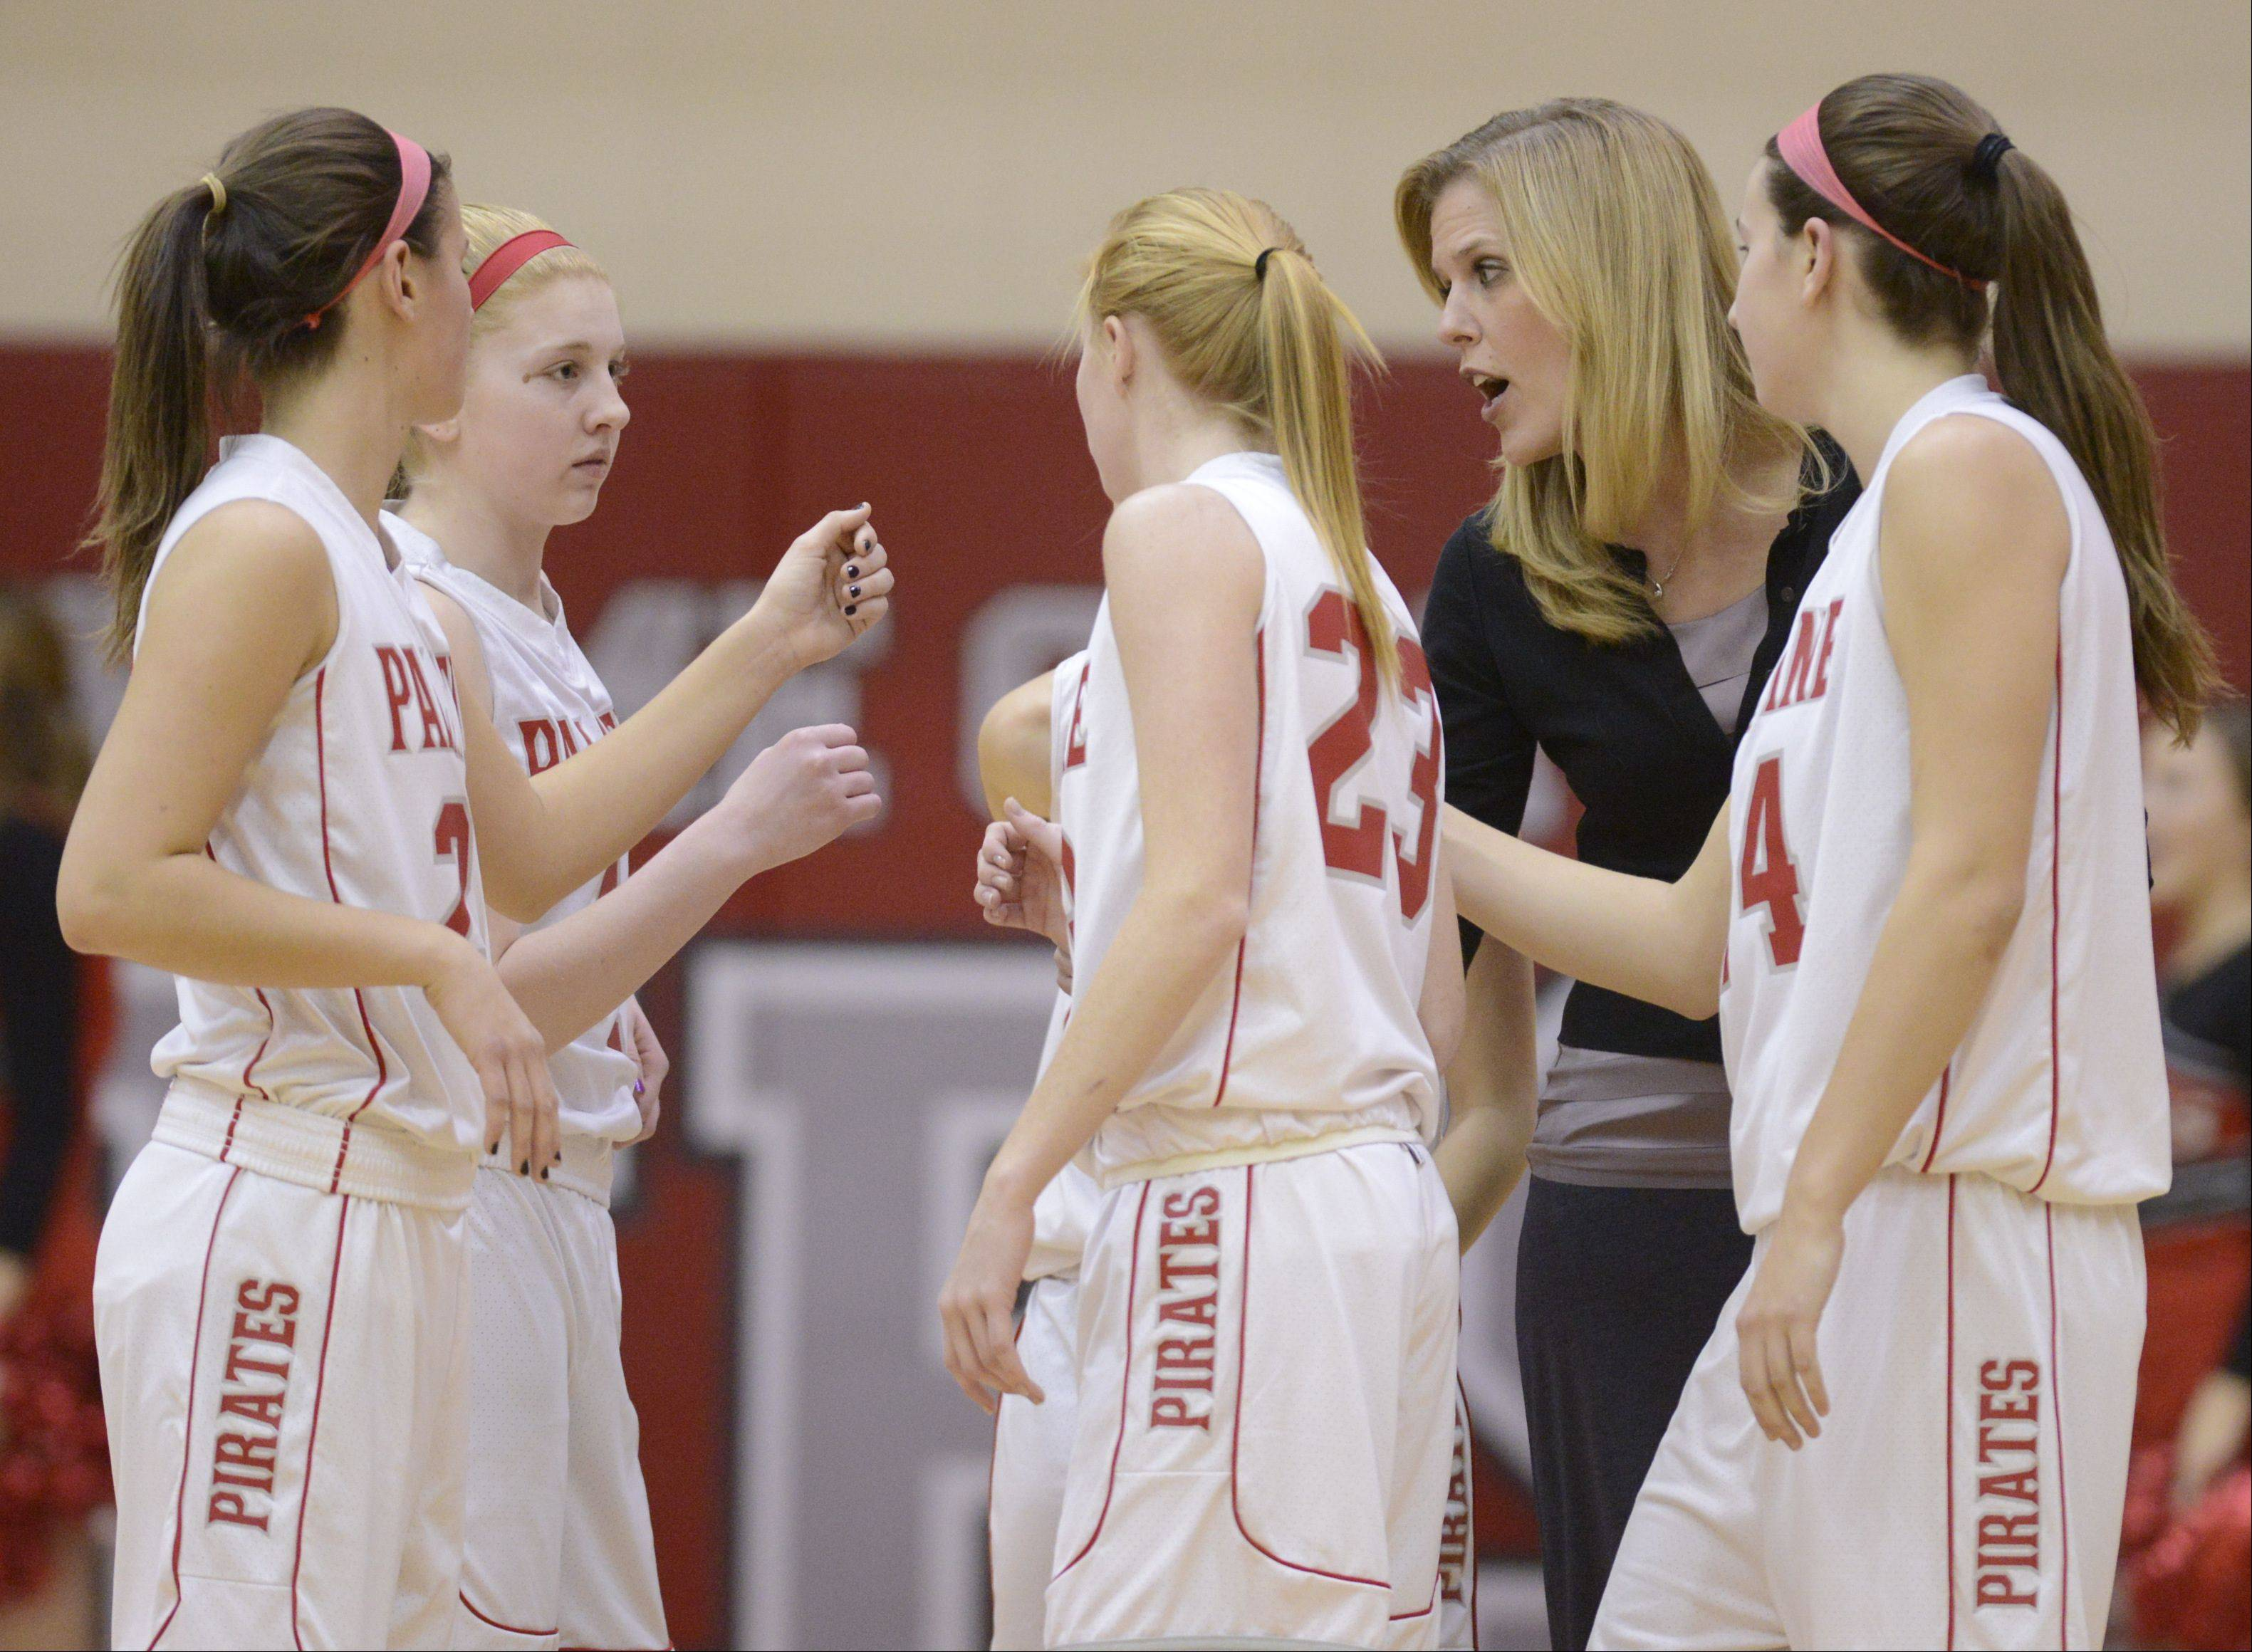 Images from the Palatine vs. Rolling Meadows girls basketball game on Wednesday, January 9th, in Palatine